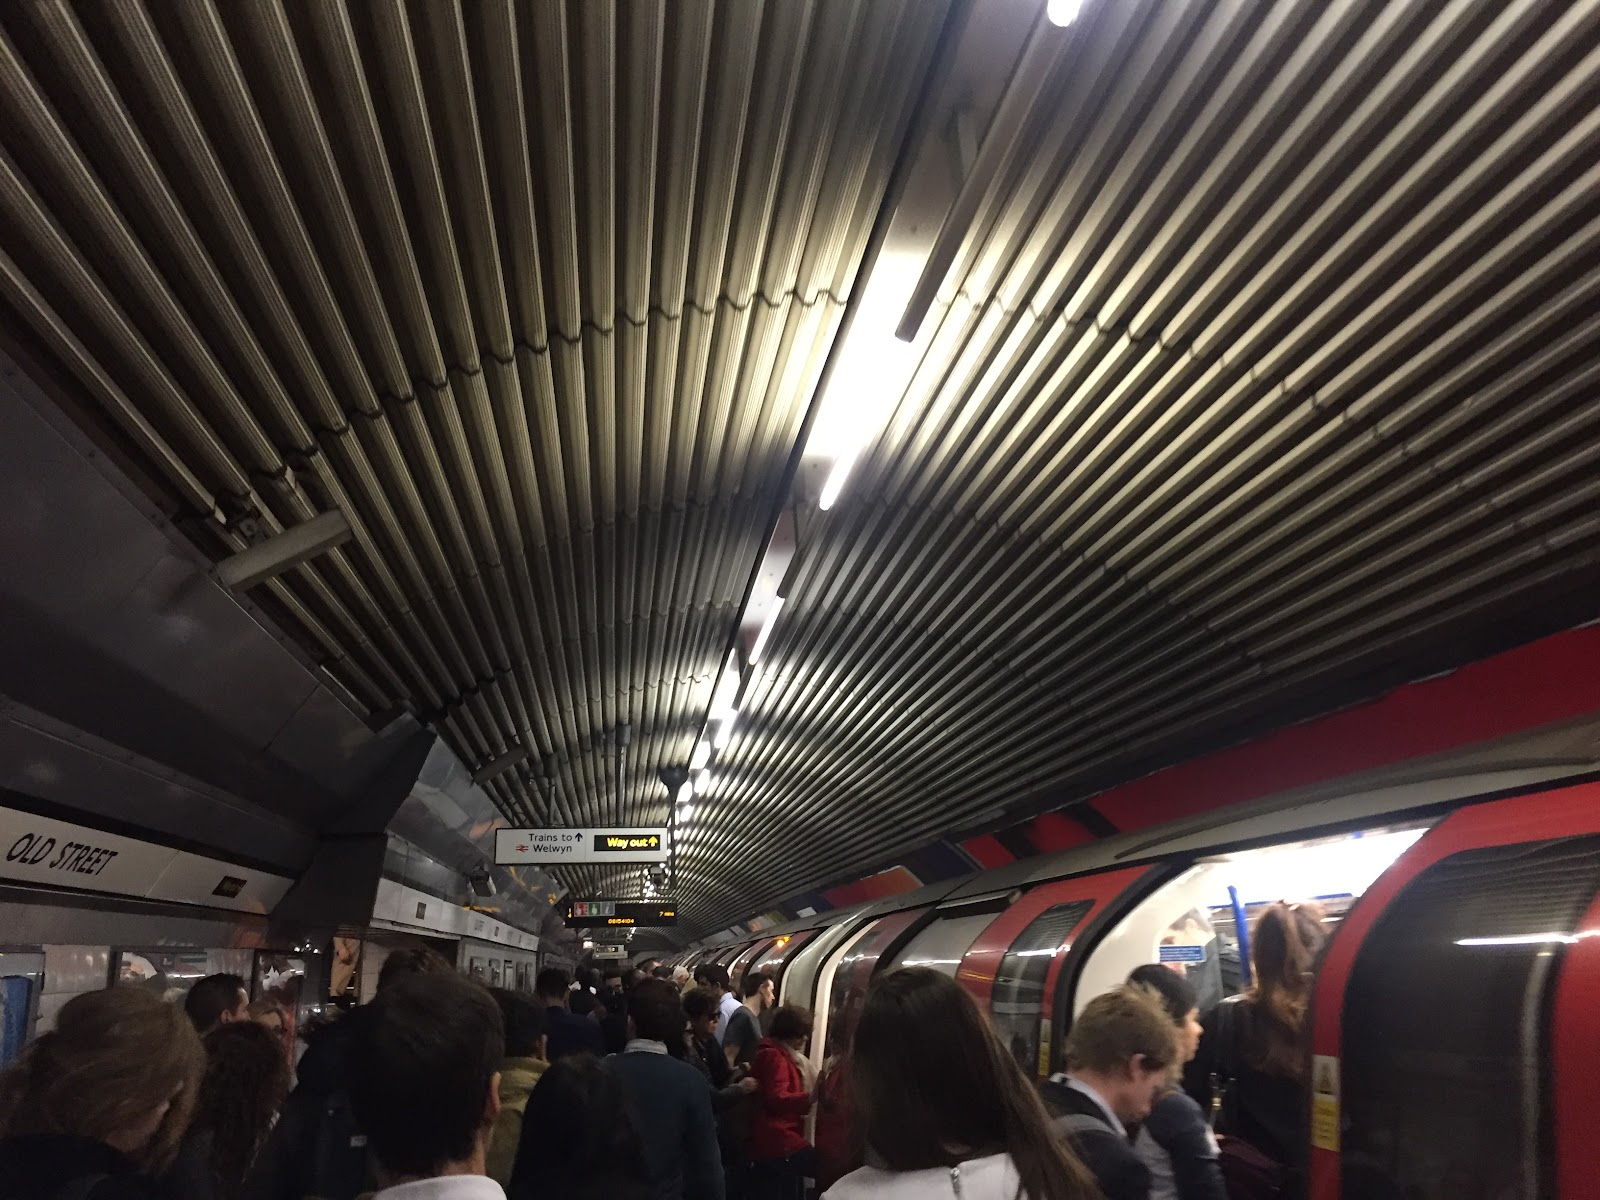 commuting in London tube